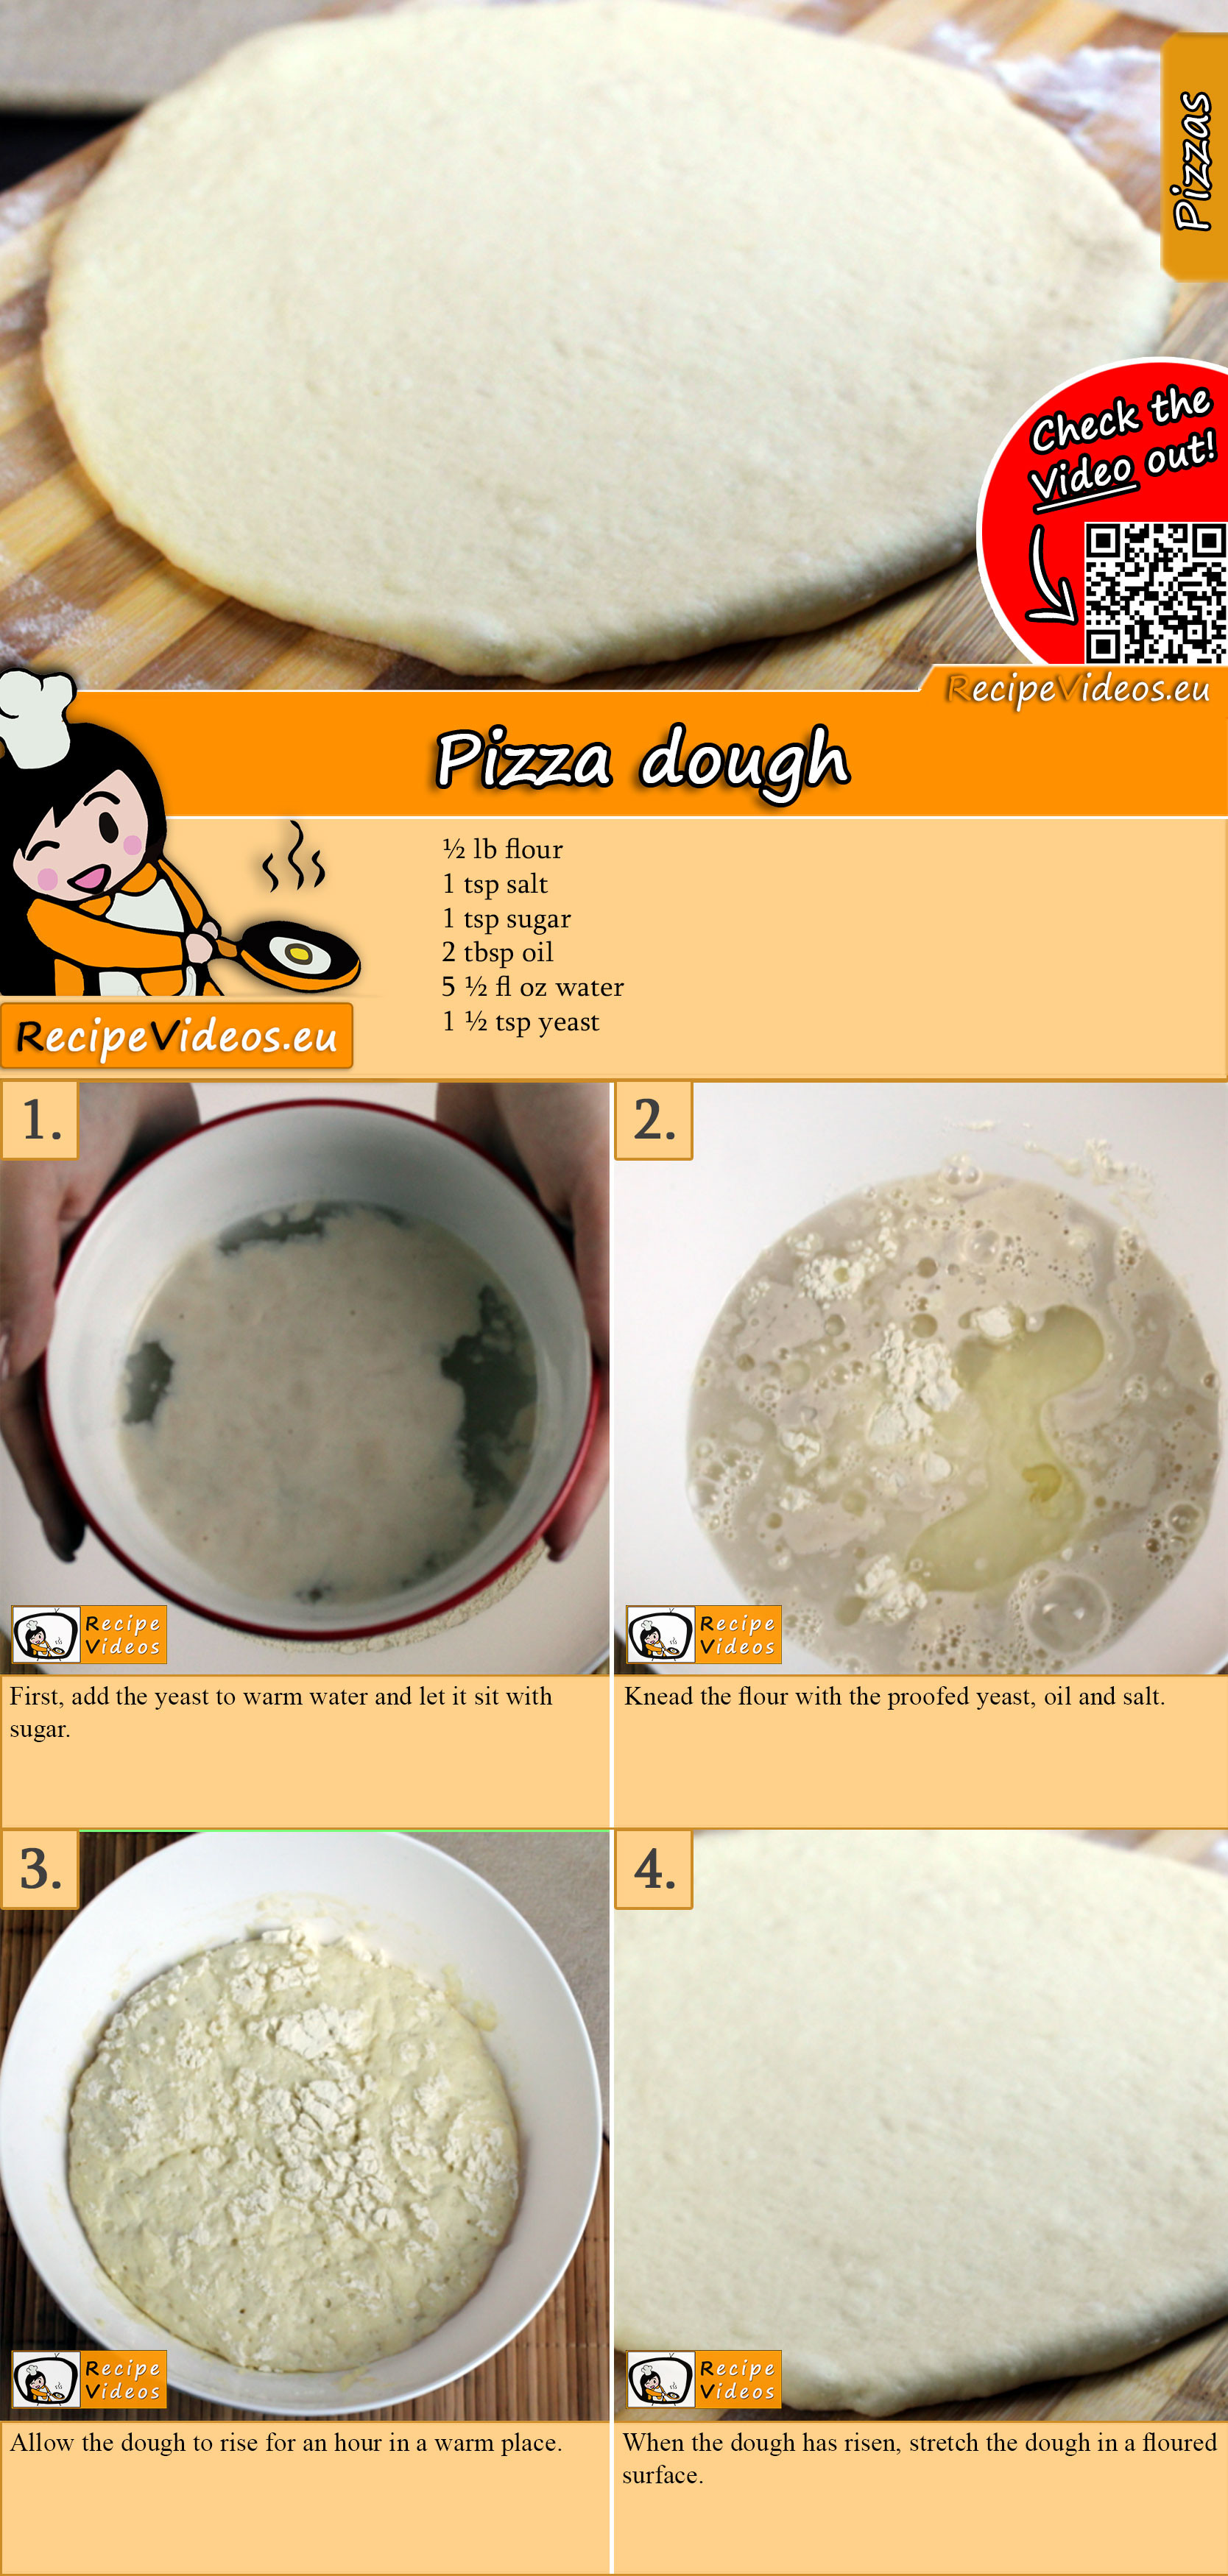 Pizza dough recipe with video